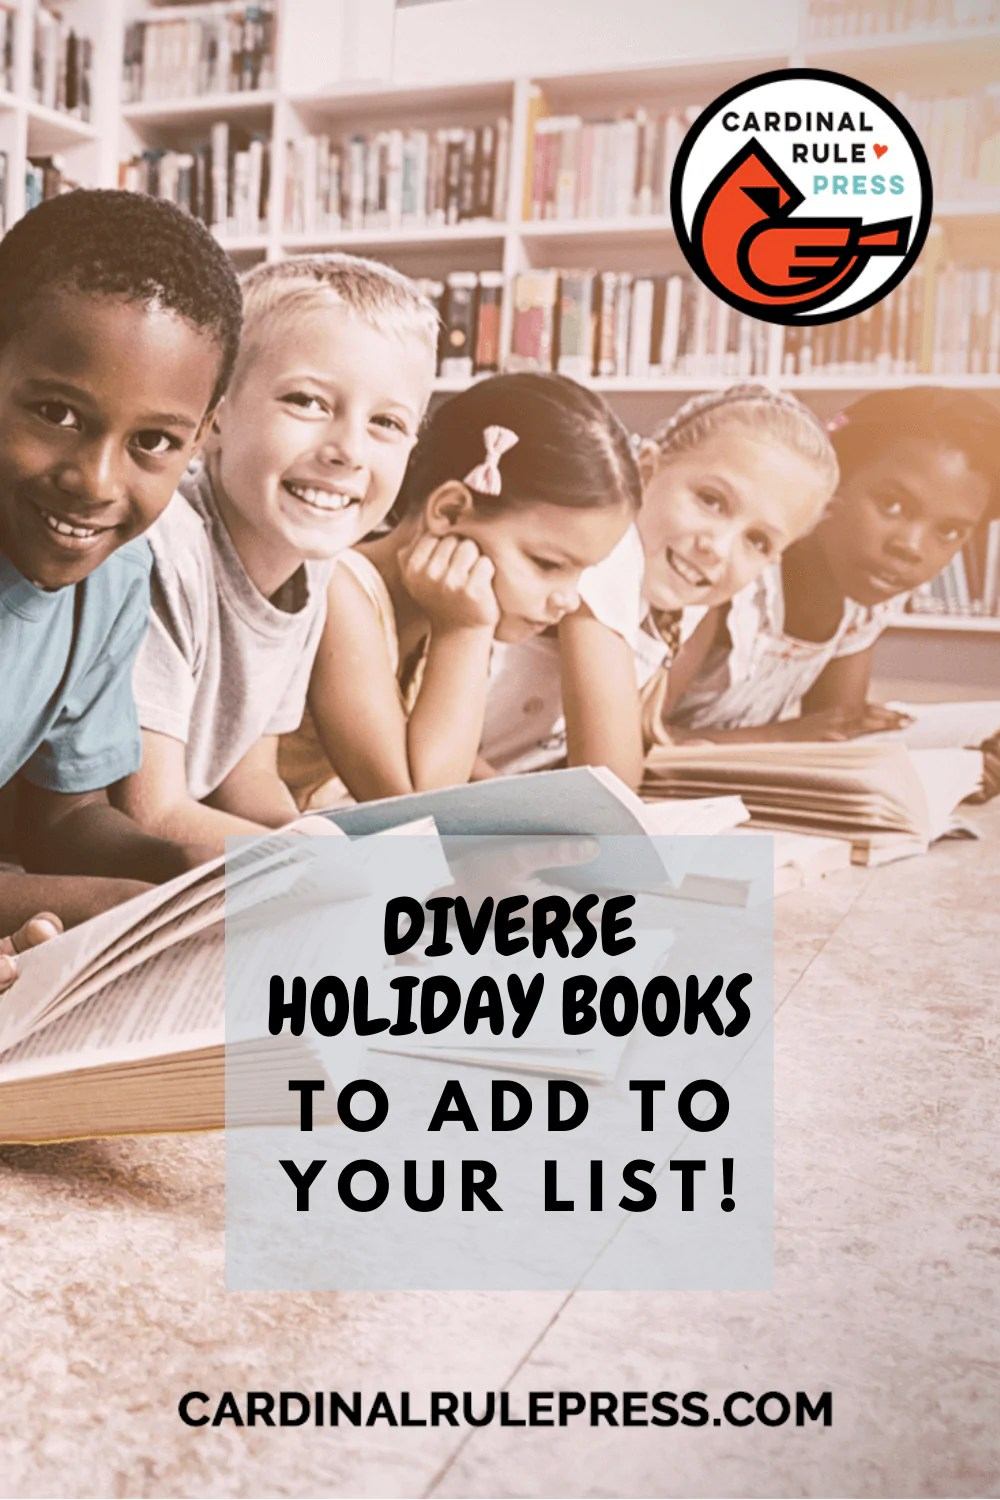 Diverse Holiday Books to Add to Your List!